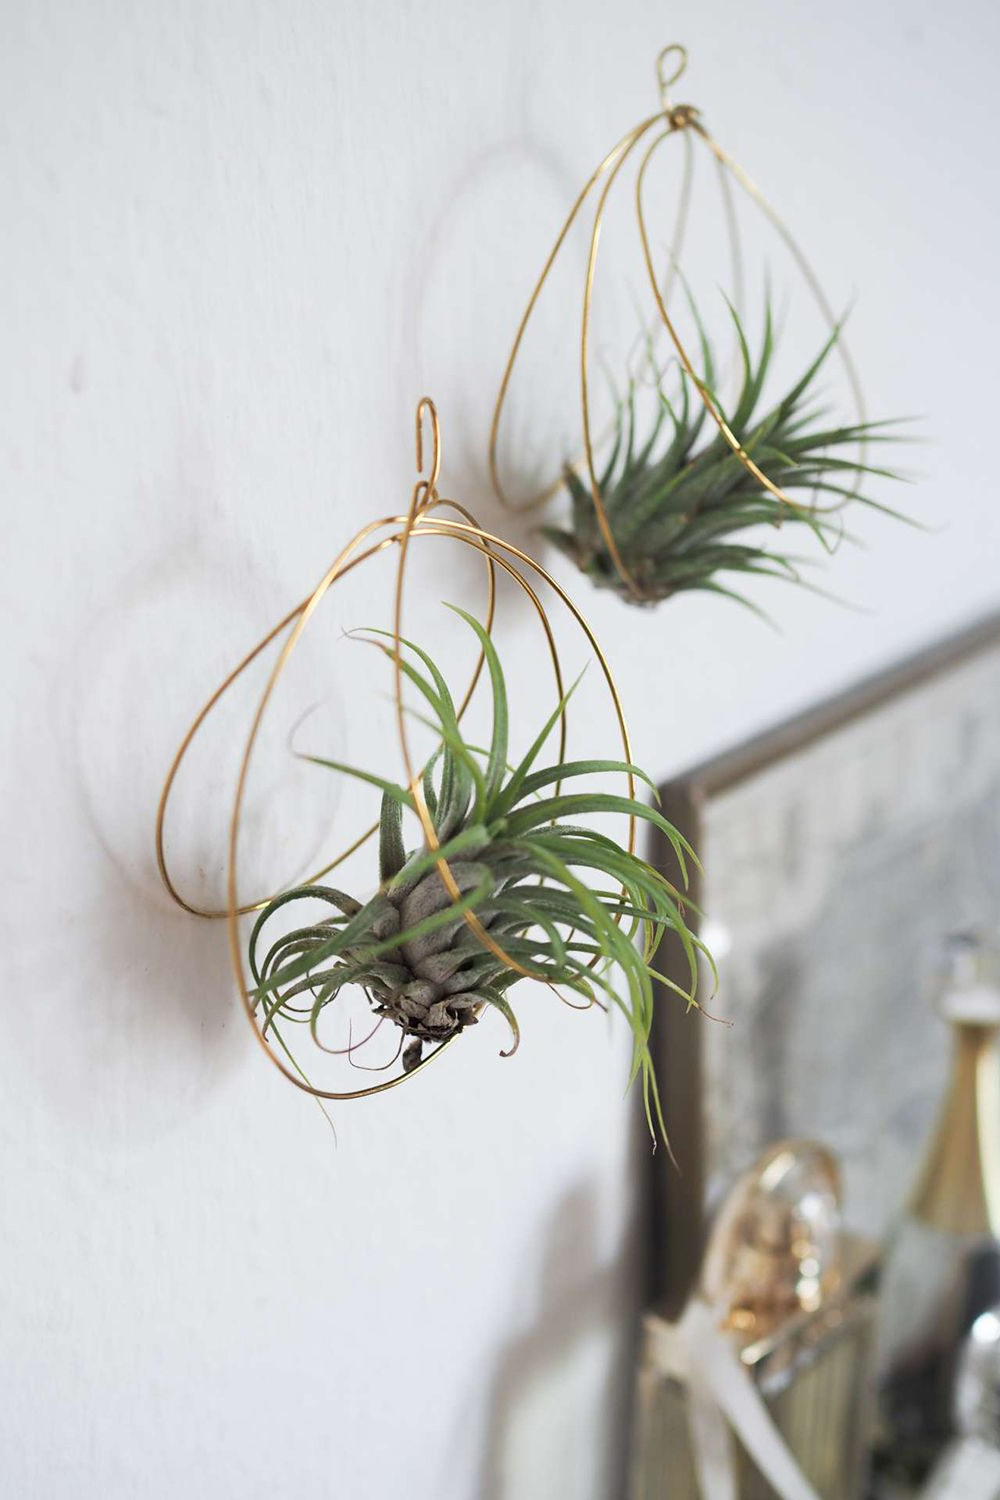 75 Cozy Fall Diy Projects Plant Holders Hanging Plants